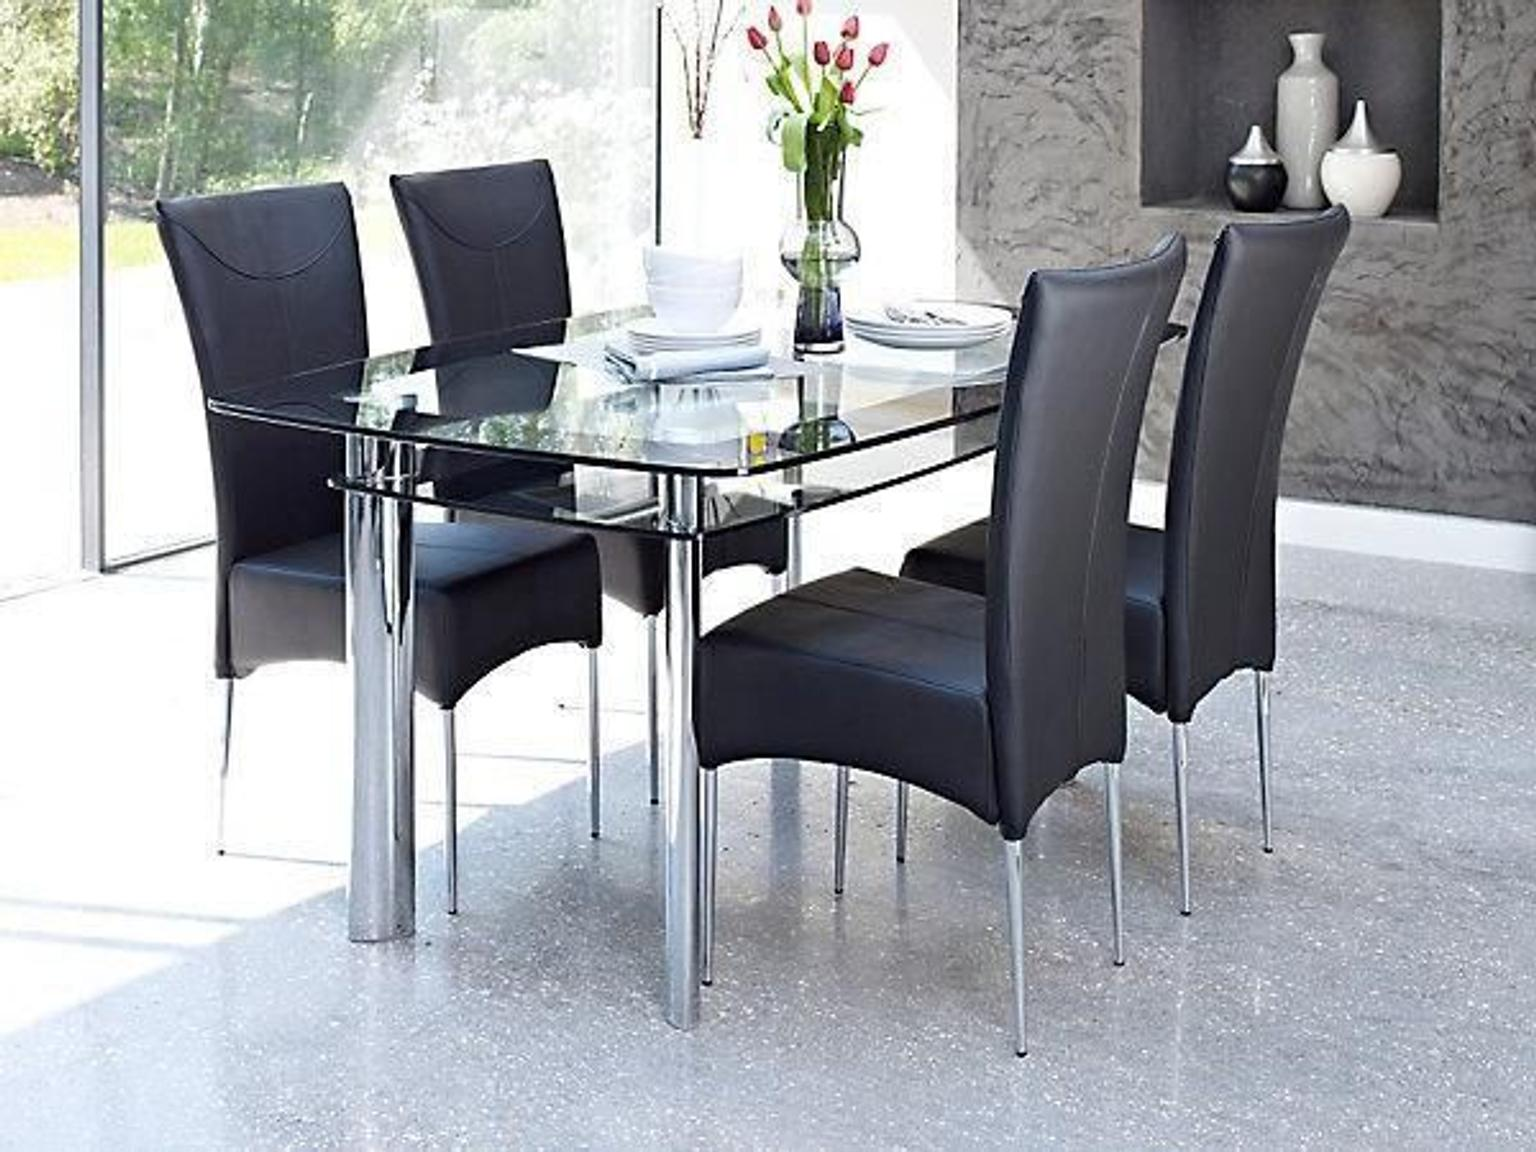 another chance 4e515 61240 Harveys Boat Dining Table & 6 Marilyn Chairs